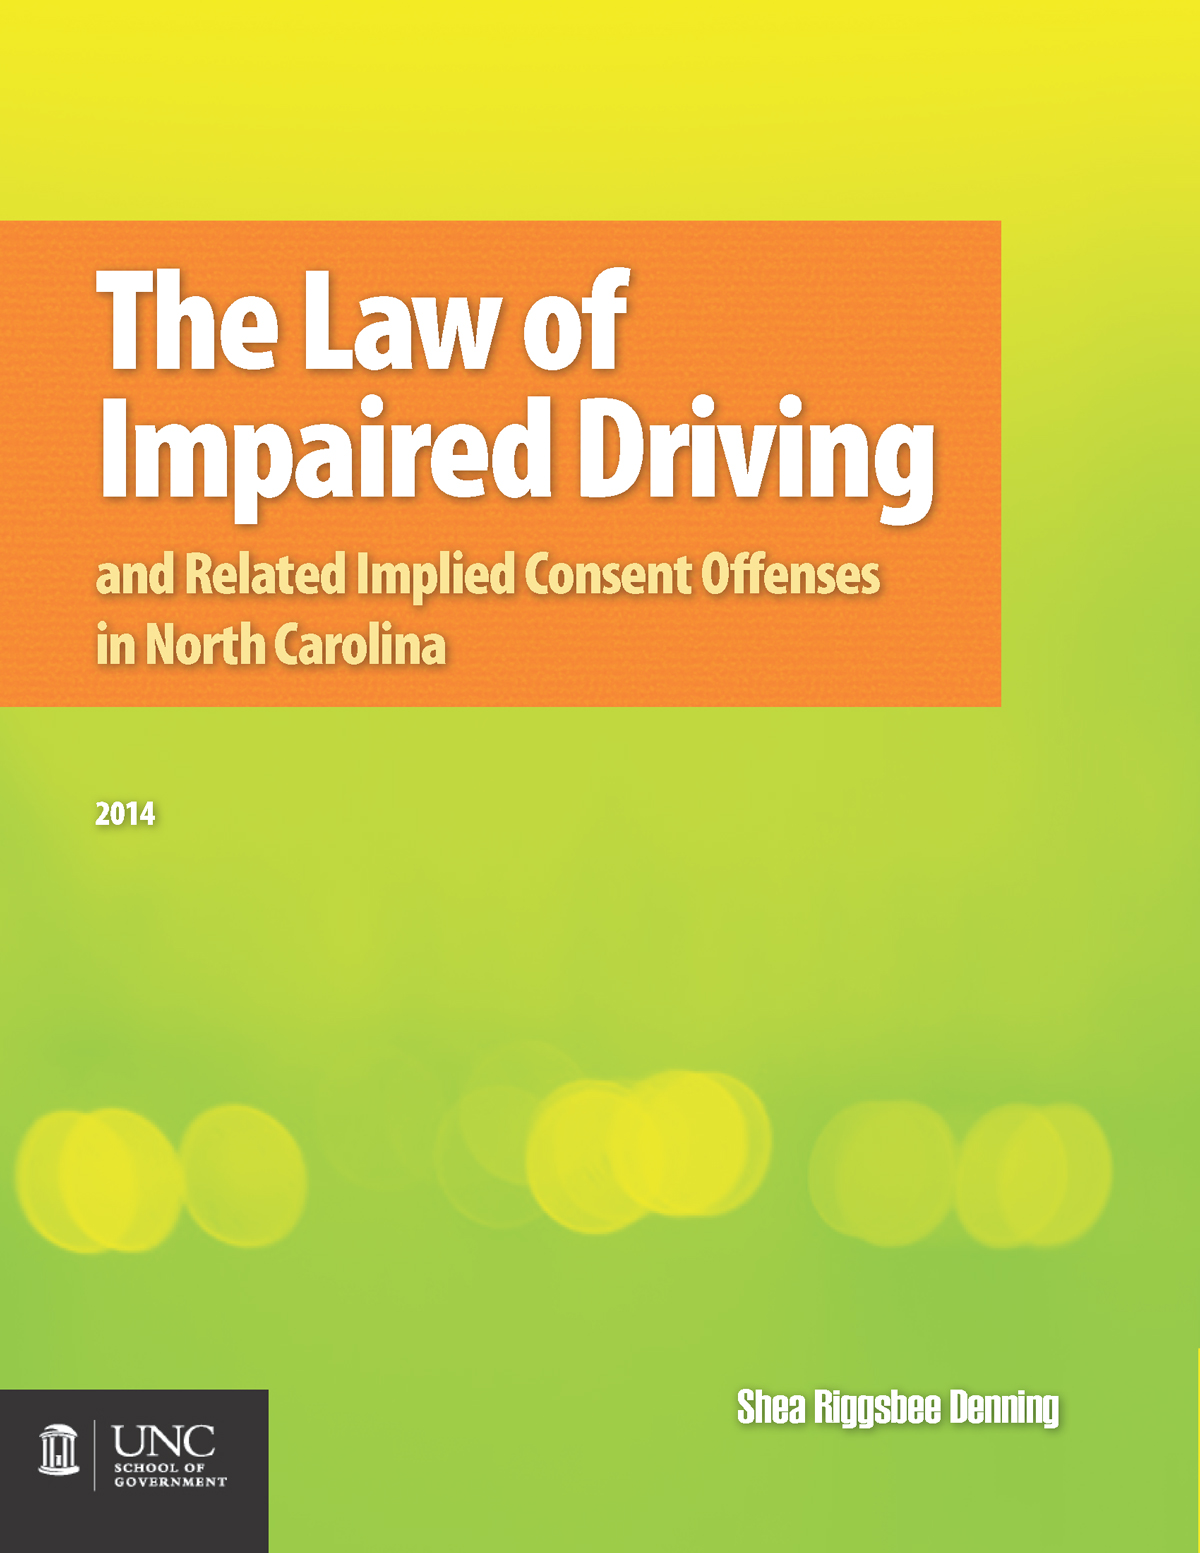 Cover image for The Law of Impaired Driving and Related Implied Consent Offenses in North Carolina